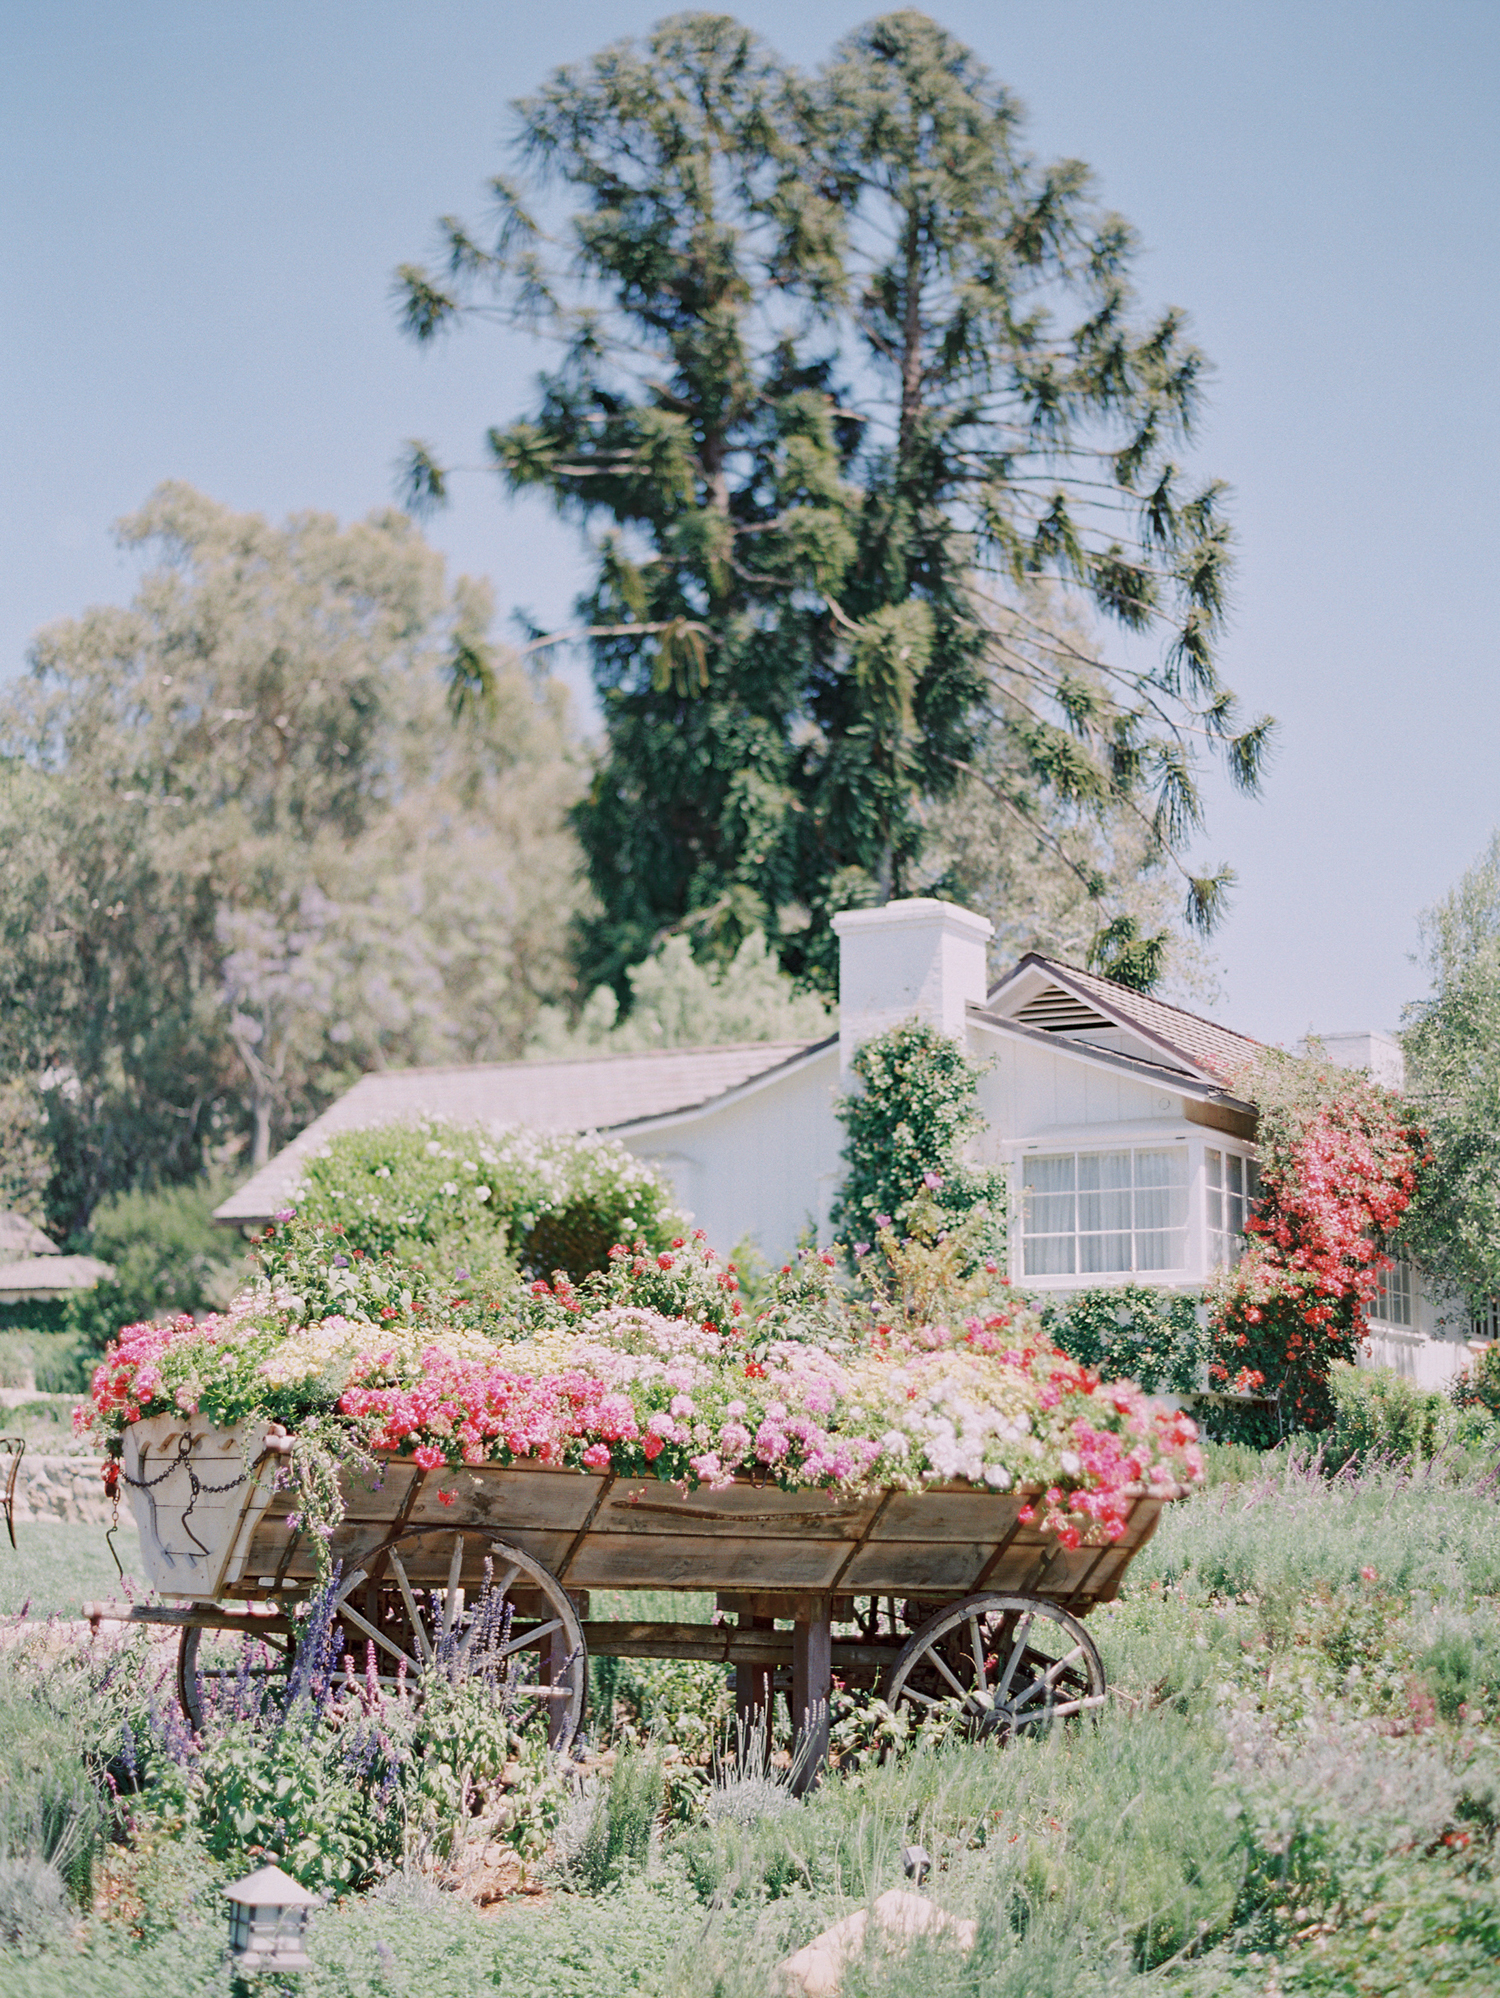 07 San Ysidro Ranch Wedding Planned Joy Proctor.JPG